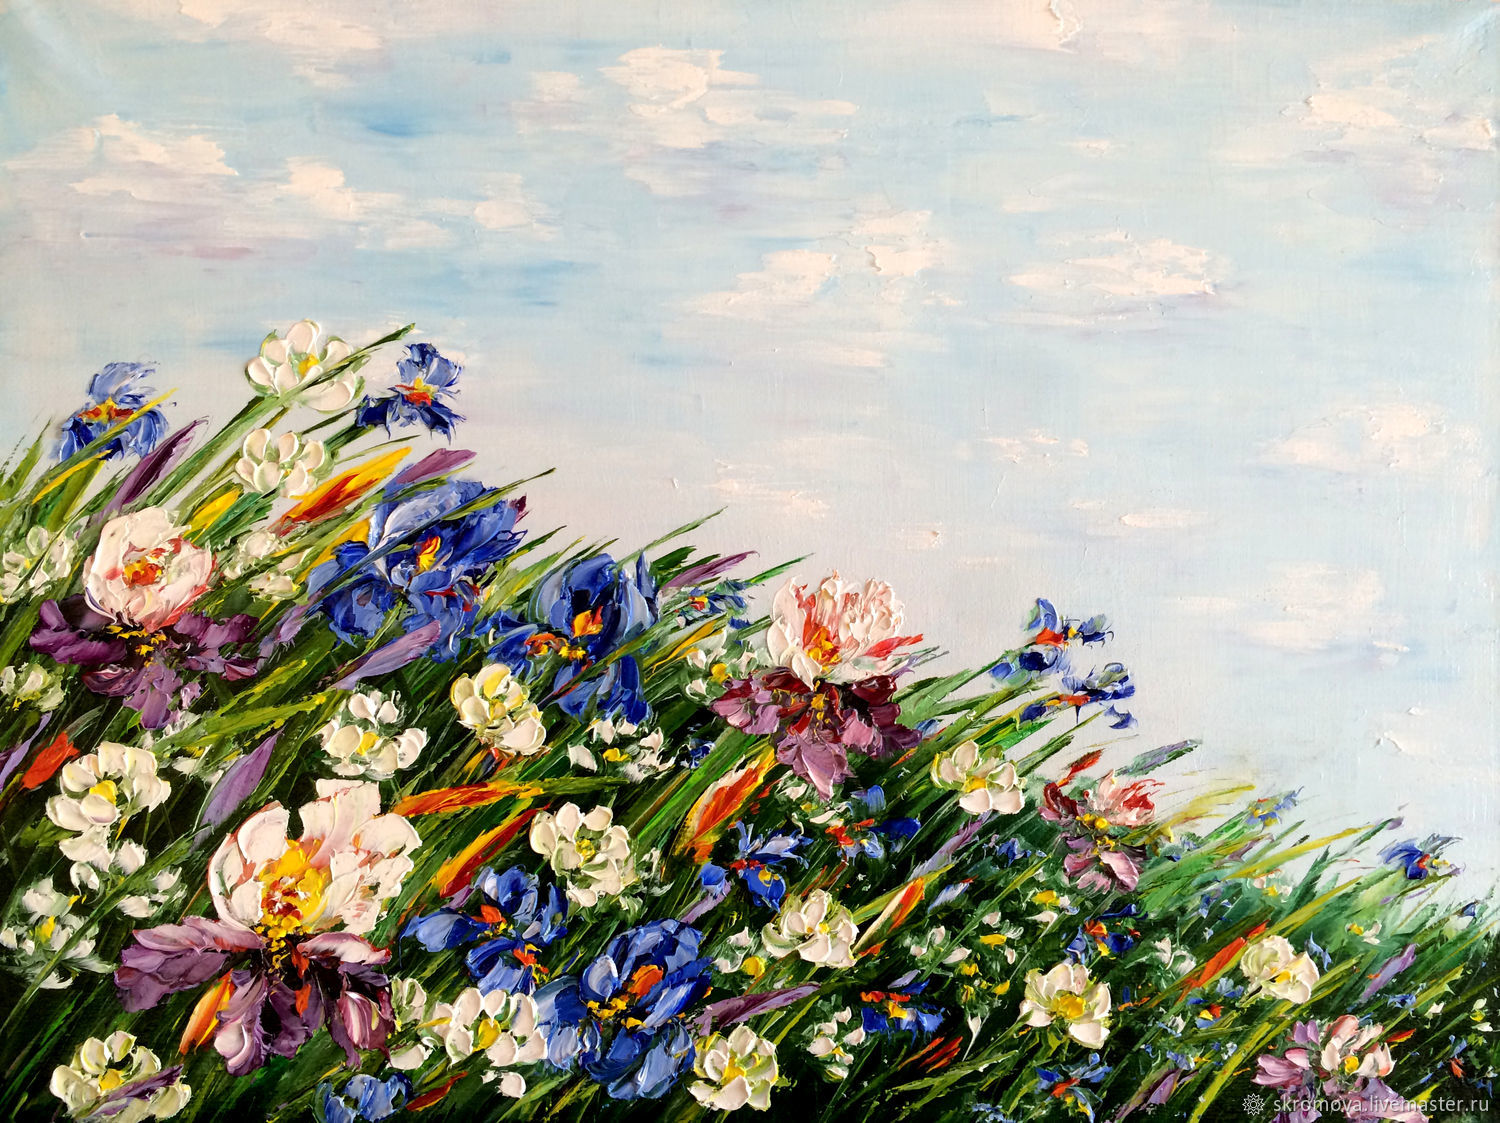 Painting with irises oil. Irises in the field, Pictures, Moscow,  Фото №1